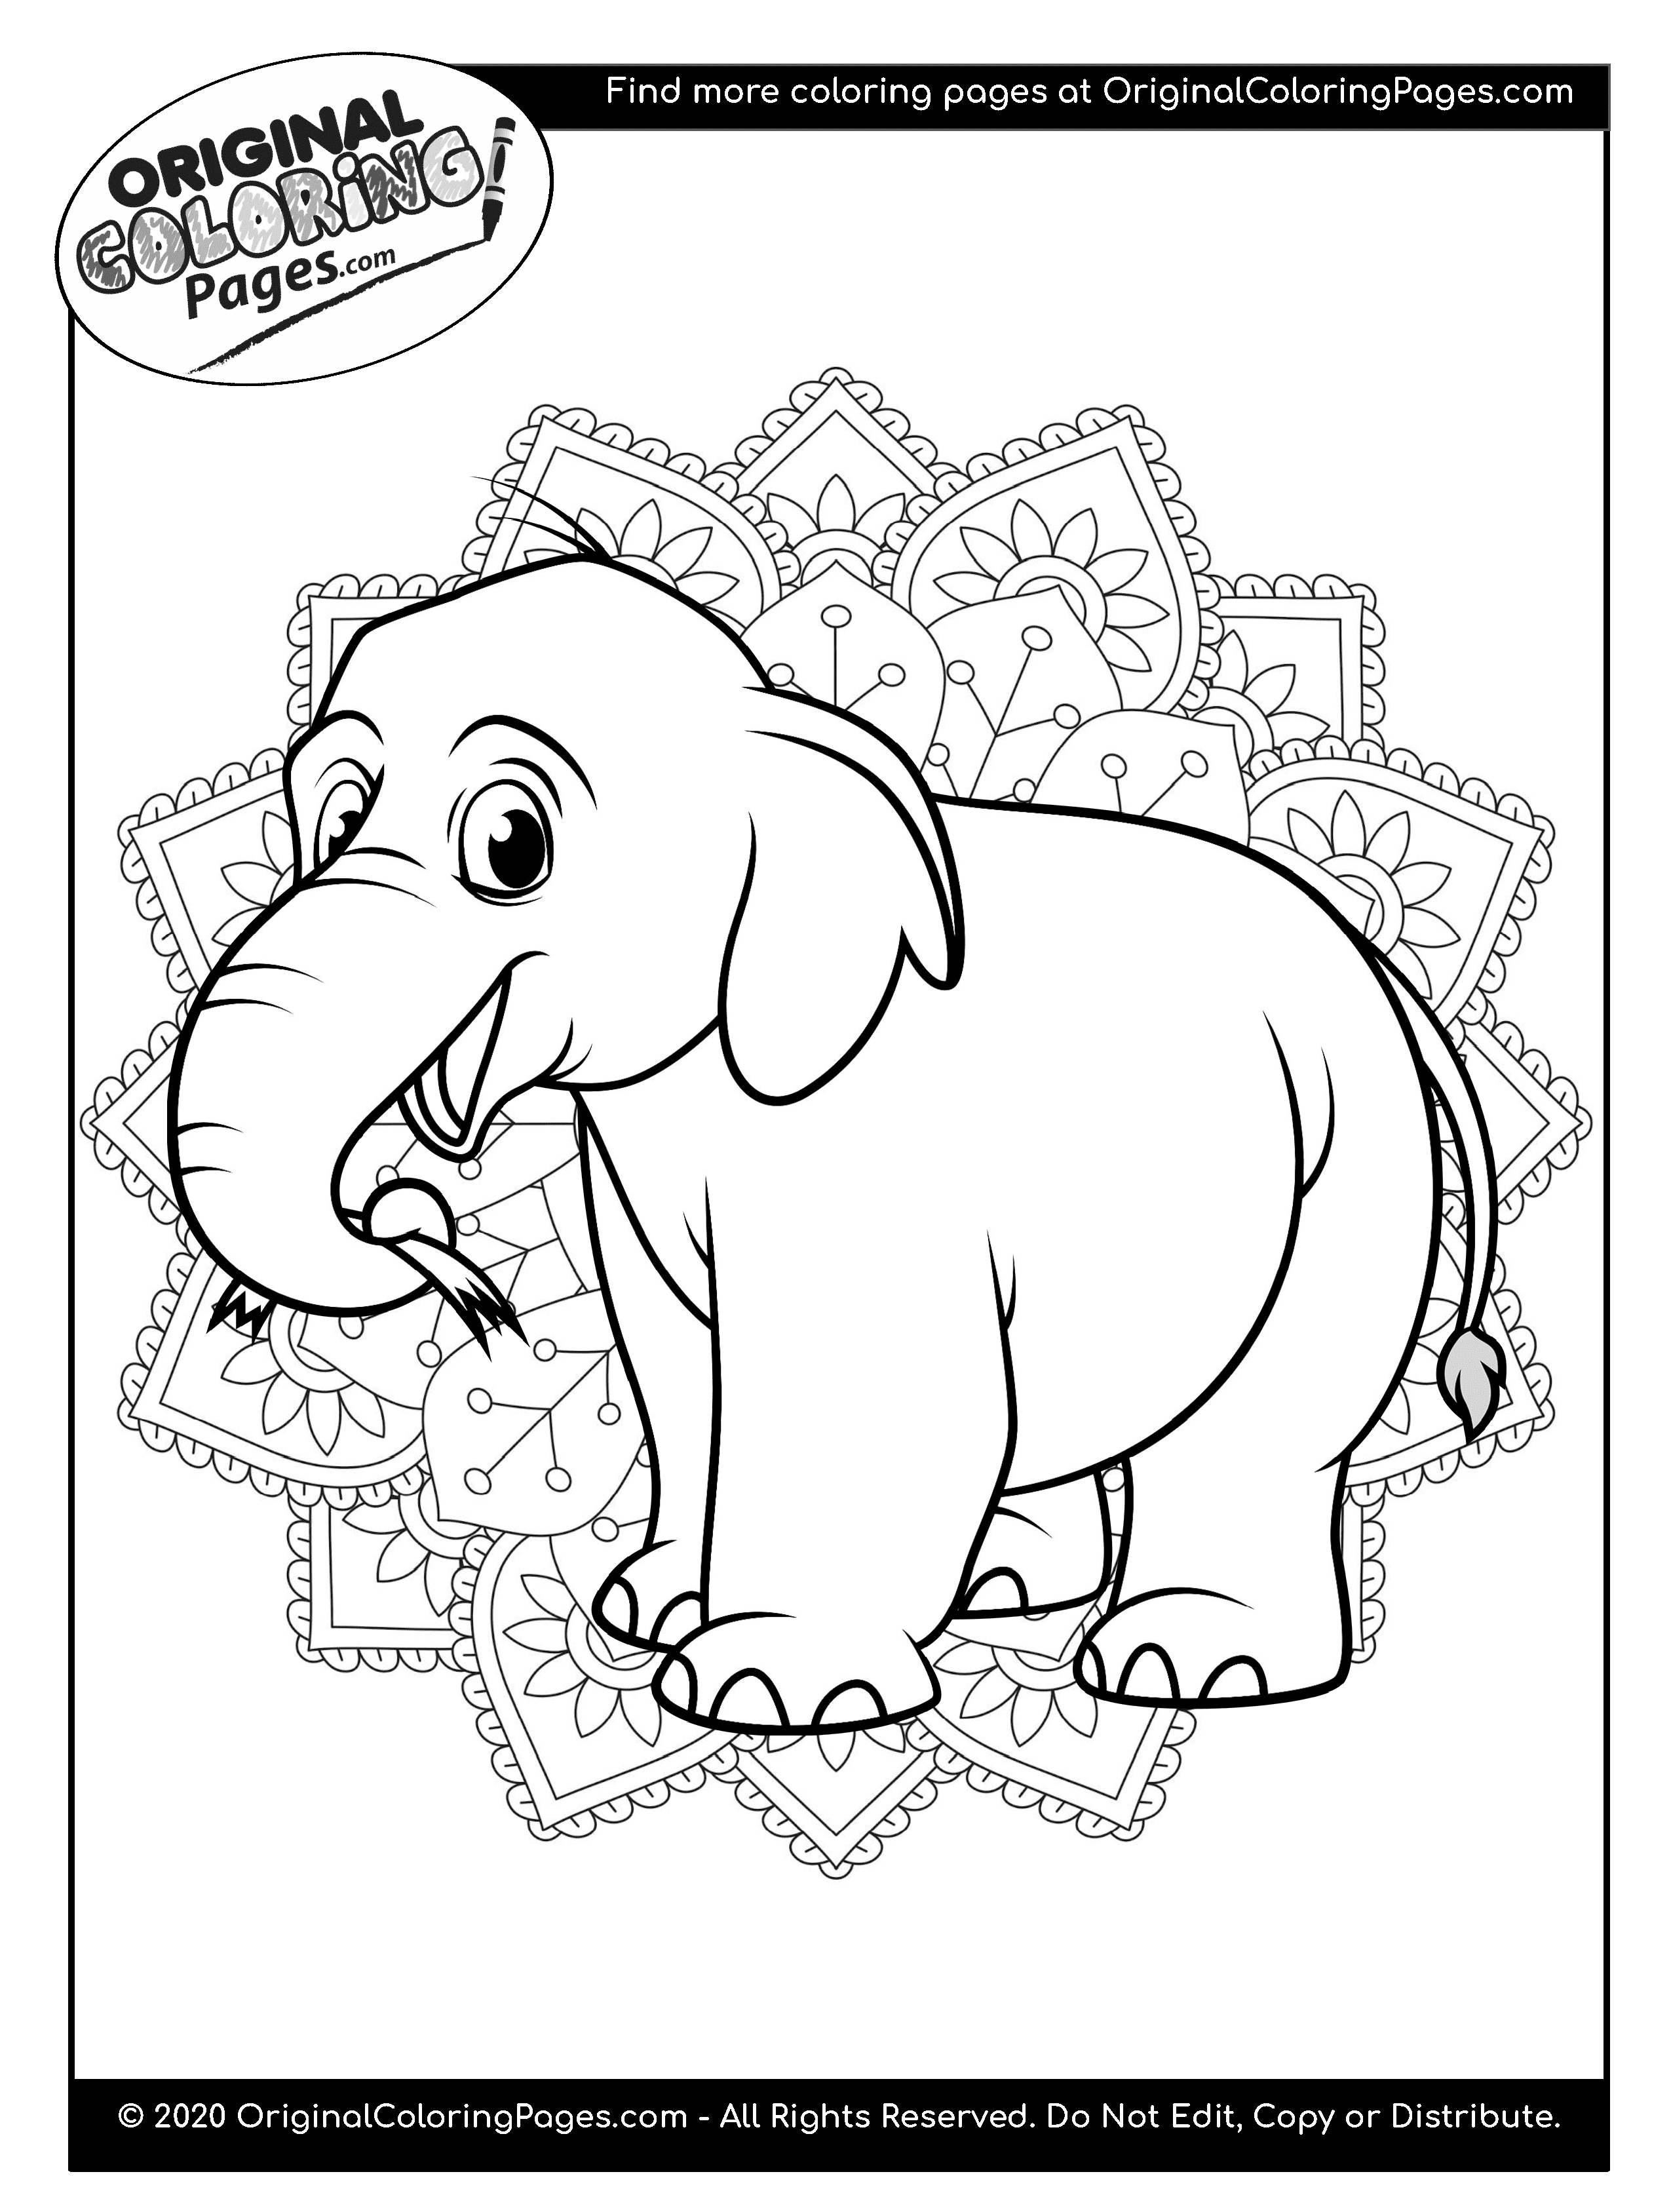 elephants coloring pages elephant coloring pages coloring pages original pages elephants coloring